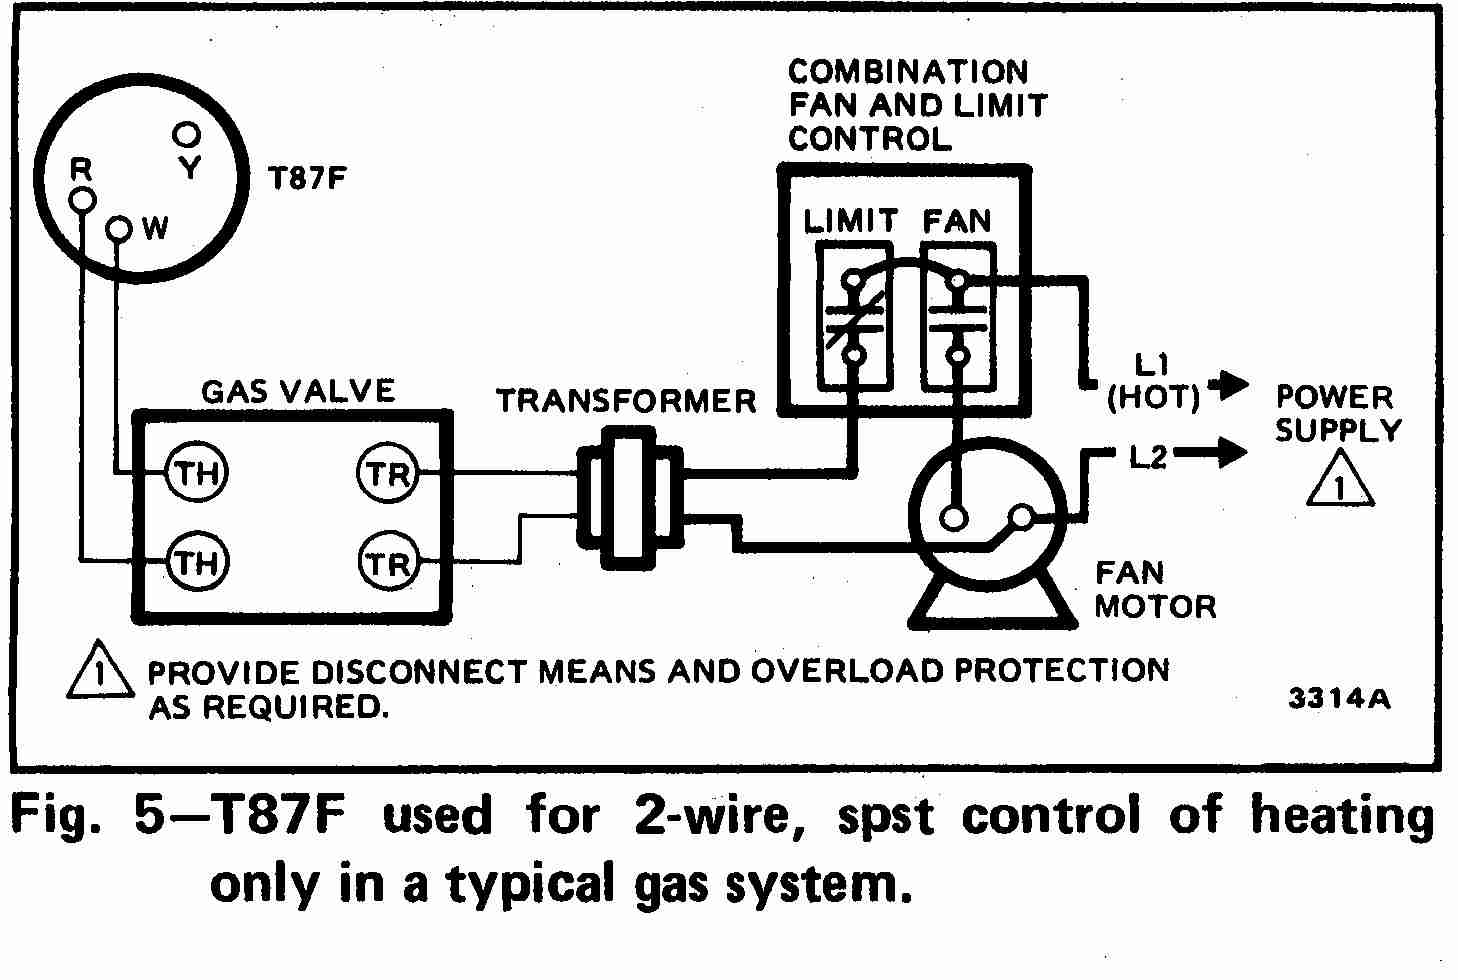 room thermostat wiring diagrams for hvac systems rh inspectapedia com Wiring Up Thermostat Wiring Up Thermostat